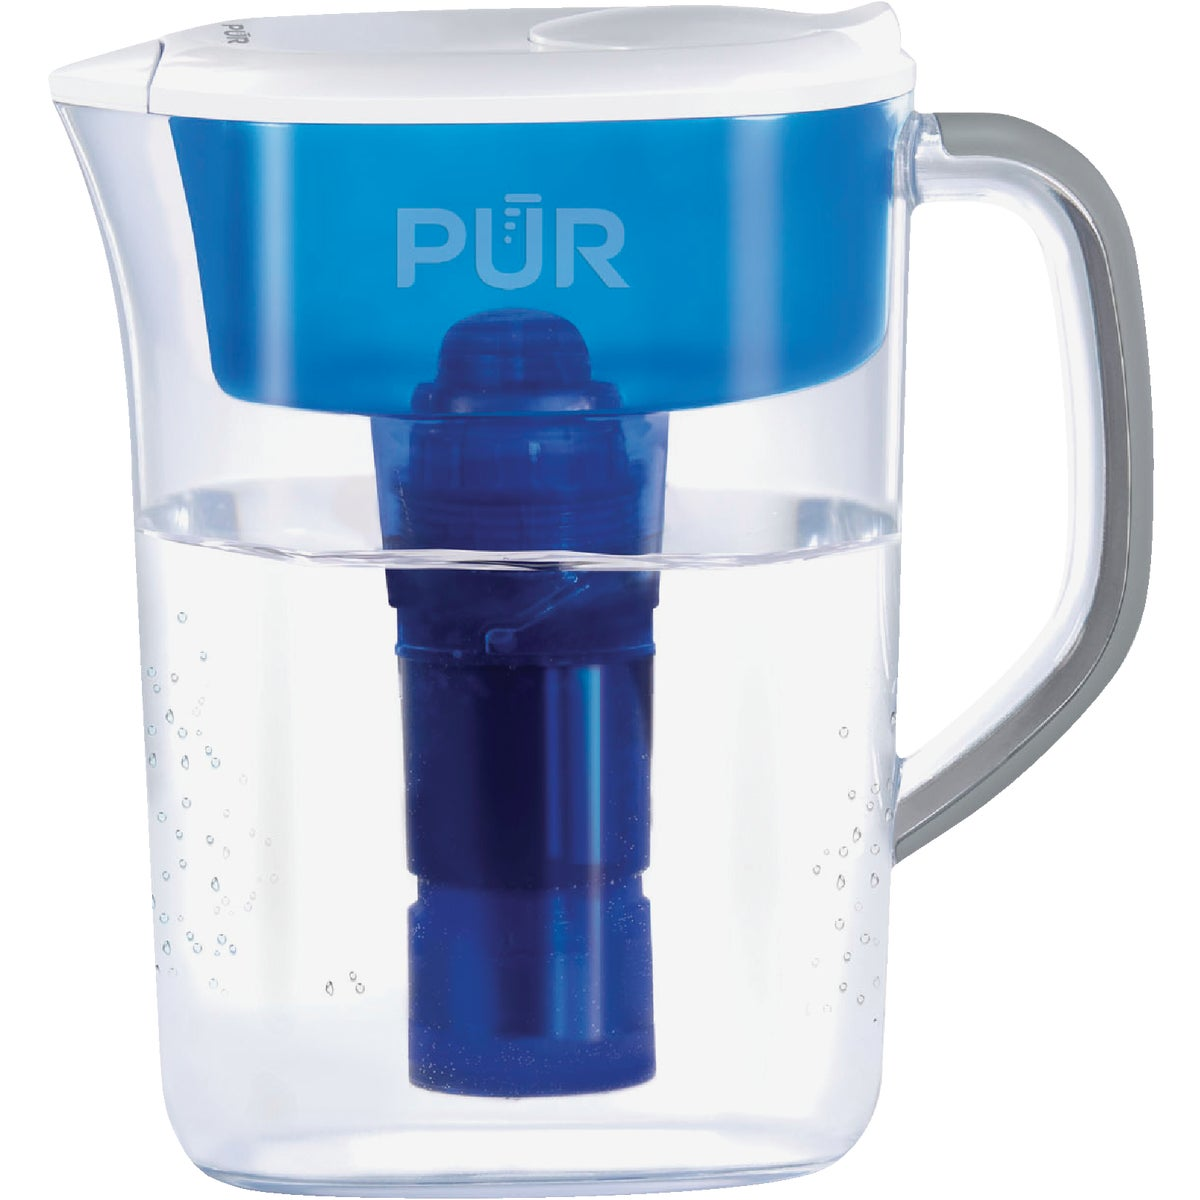 PITCHER WITH LED - PUR CR-6000 by Kaz Home Environment